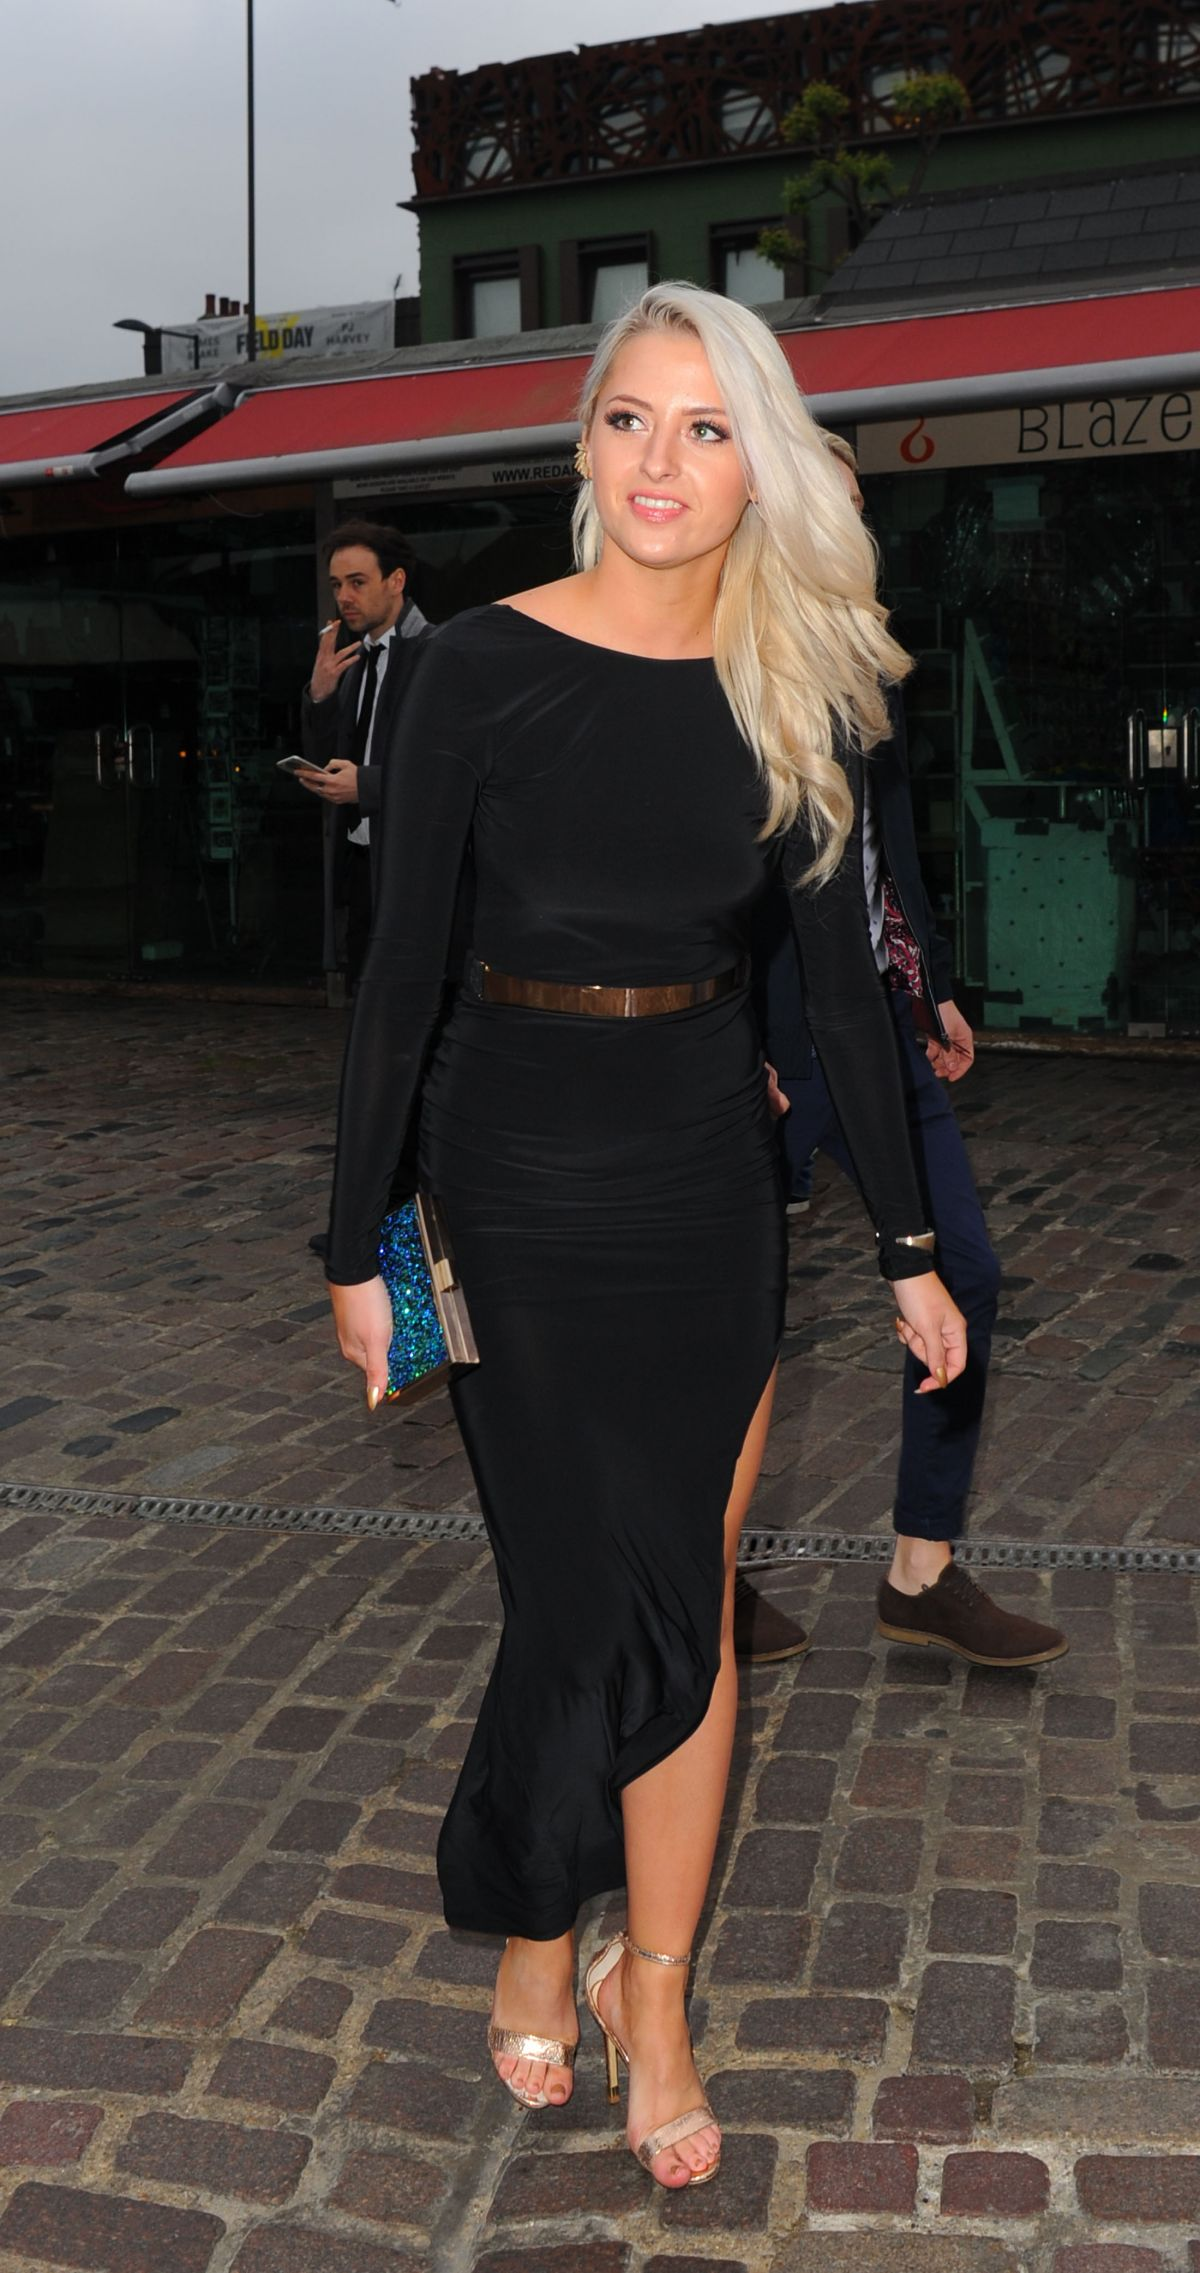 CHLOE PAIGE at Atrium Kitchen Launch Party in Camden 05/25/2016